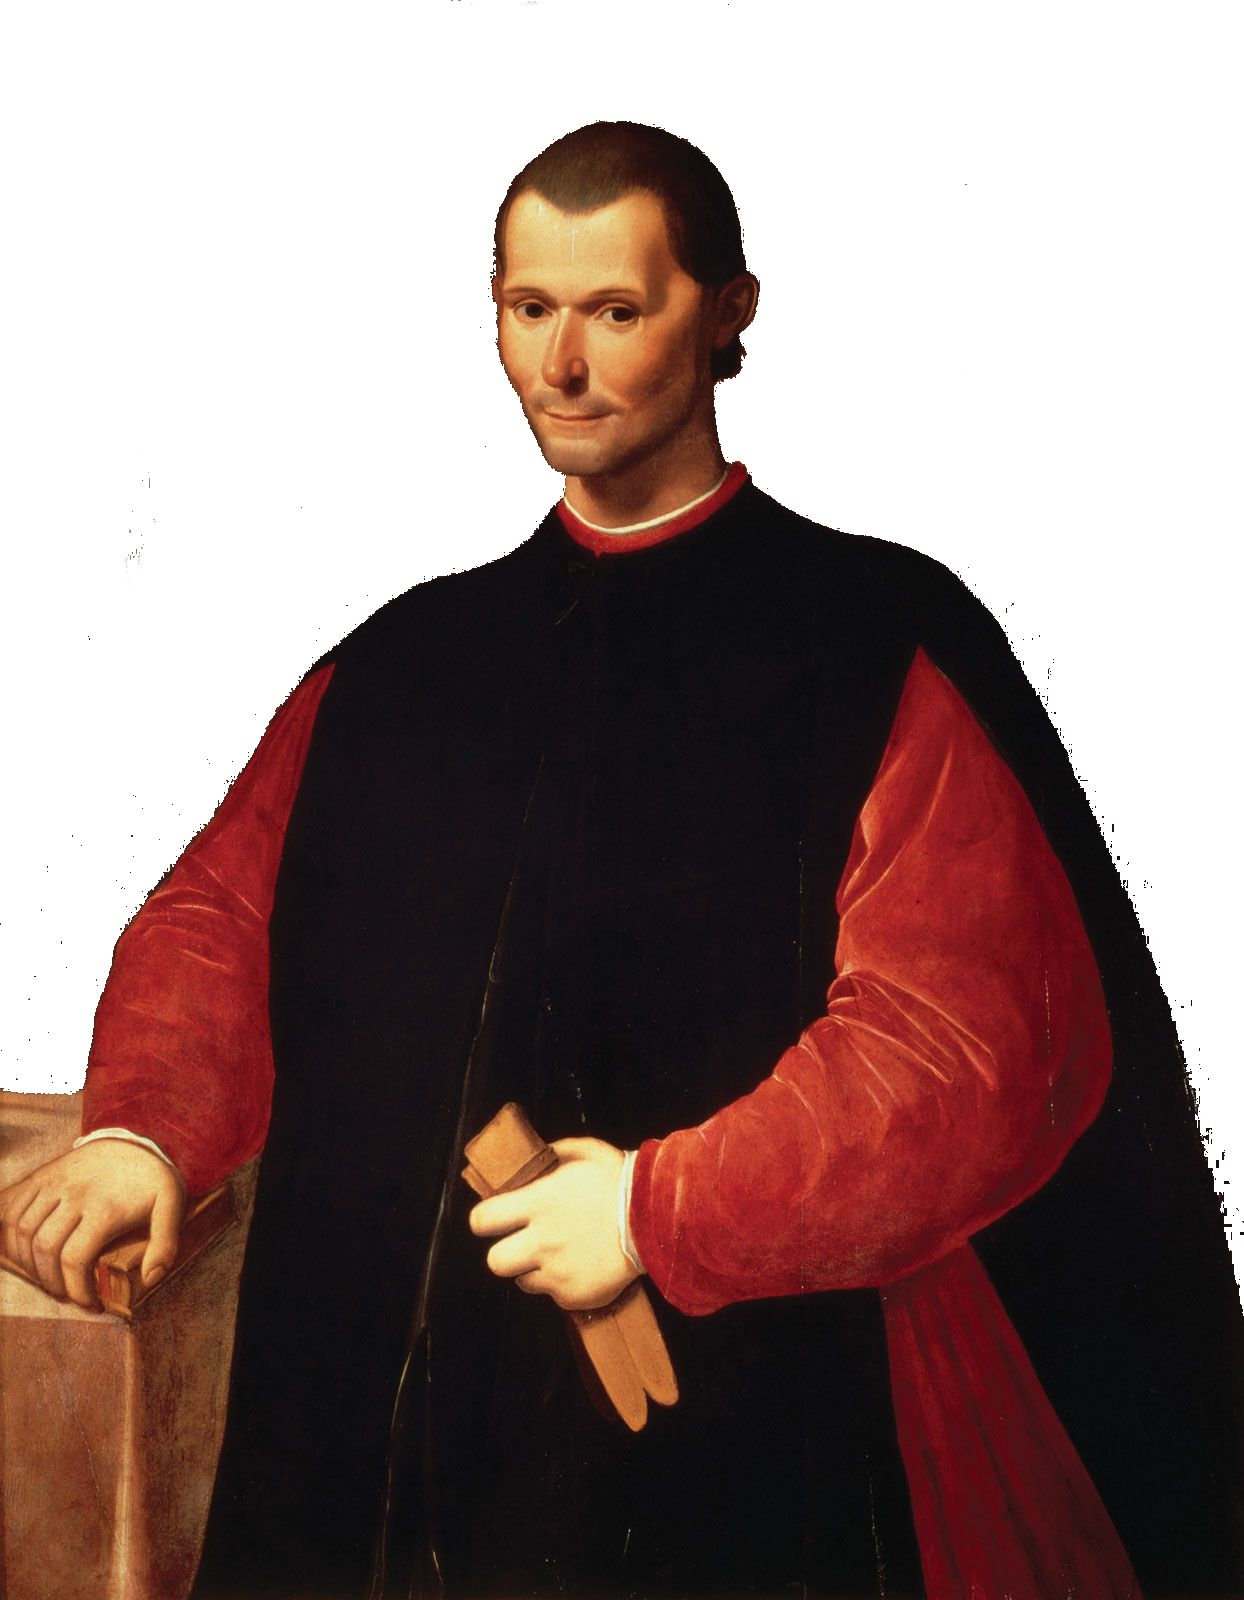 machiavelli_cropped.jpg